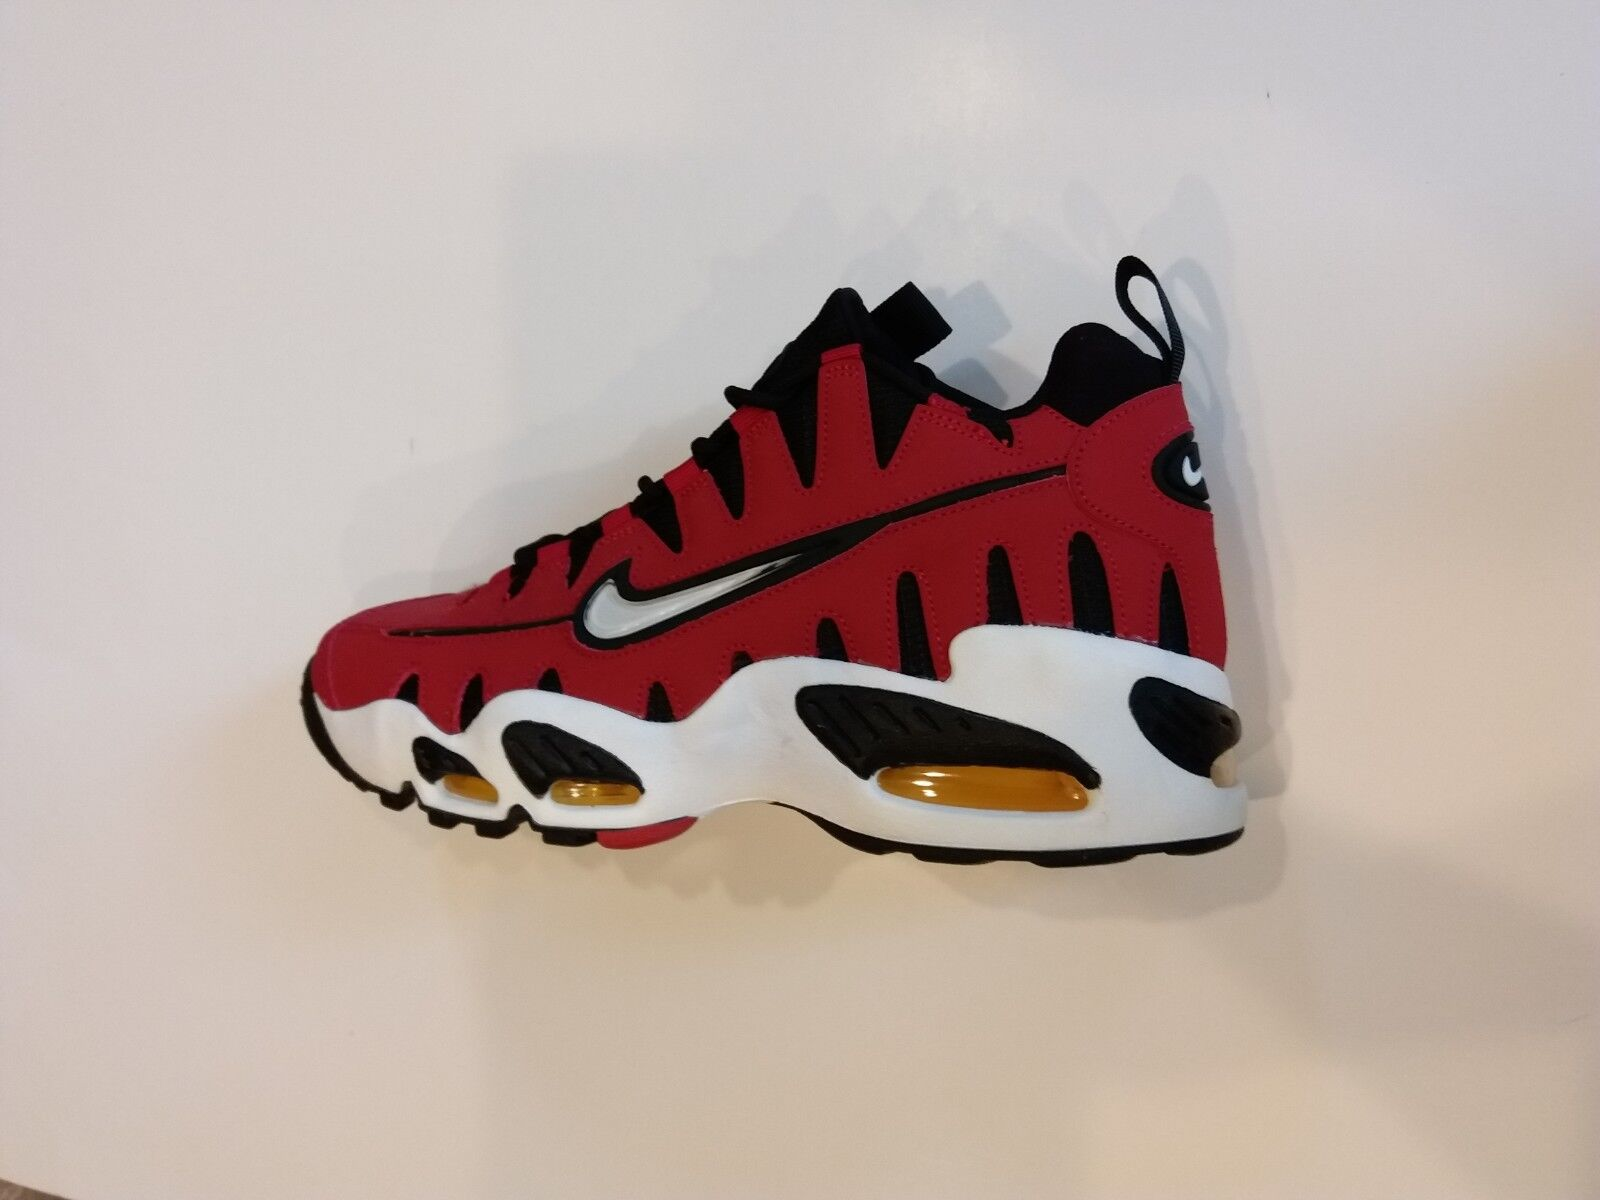 new arrival abf08 c1fe0 Rare Rare Rare Nike Air Max NM Varsity Red Black Cutout Teeth 429749-600  Mens